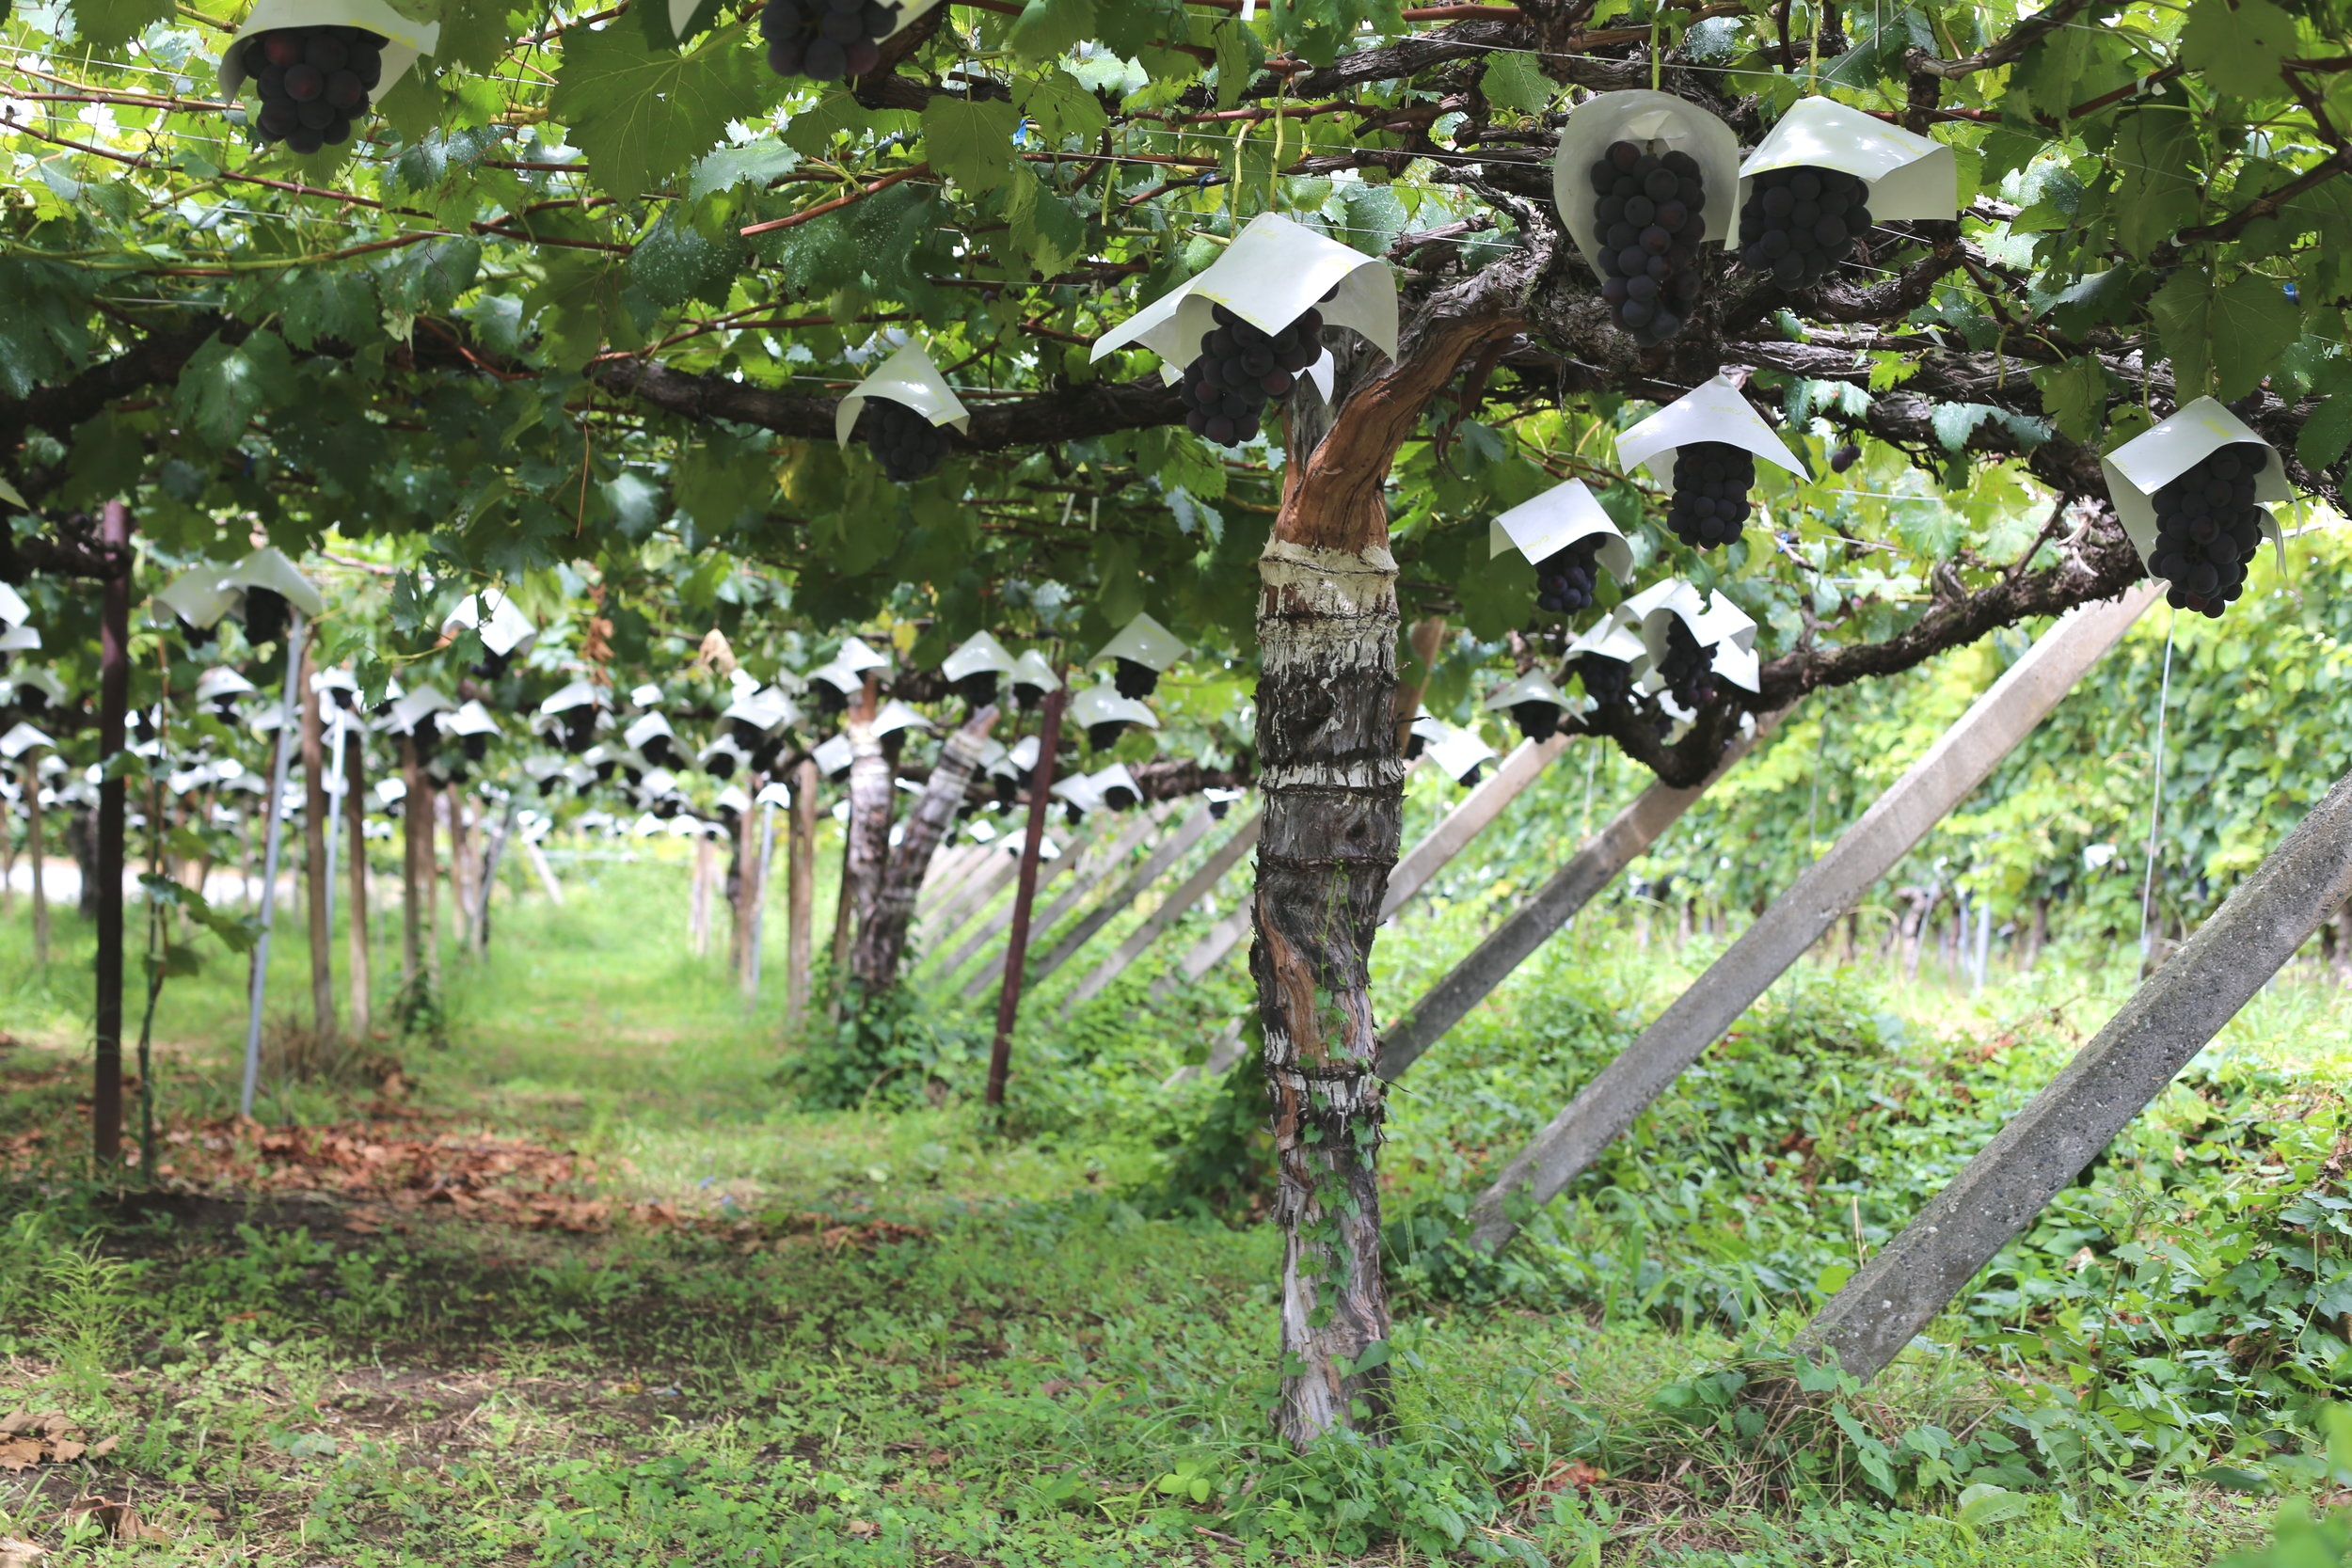 Koshu Valley_Japanese Wine Region_Pergola vineyard_Grapes w hats.JPG